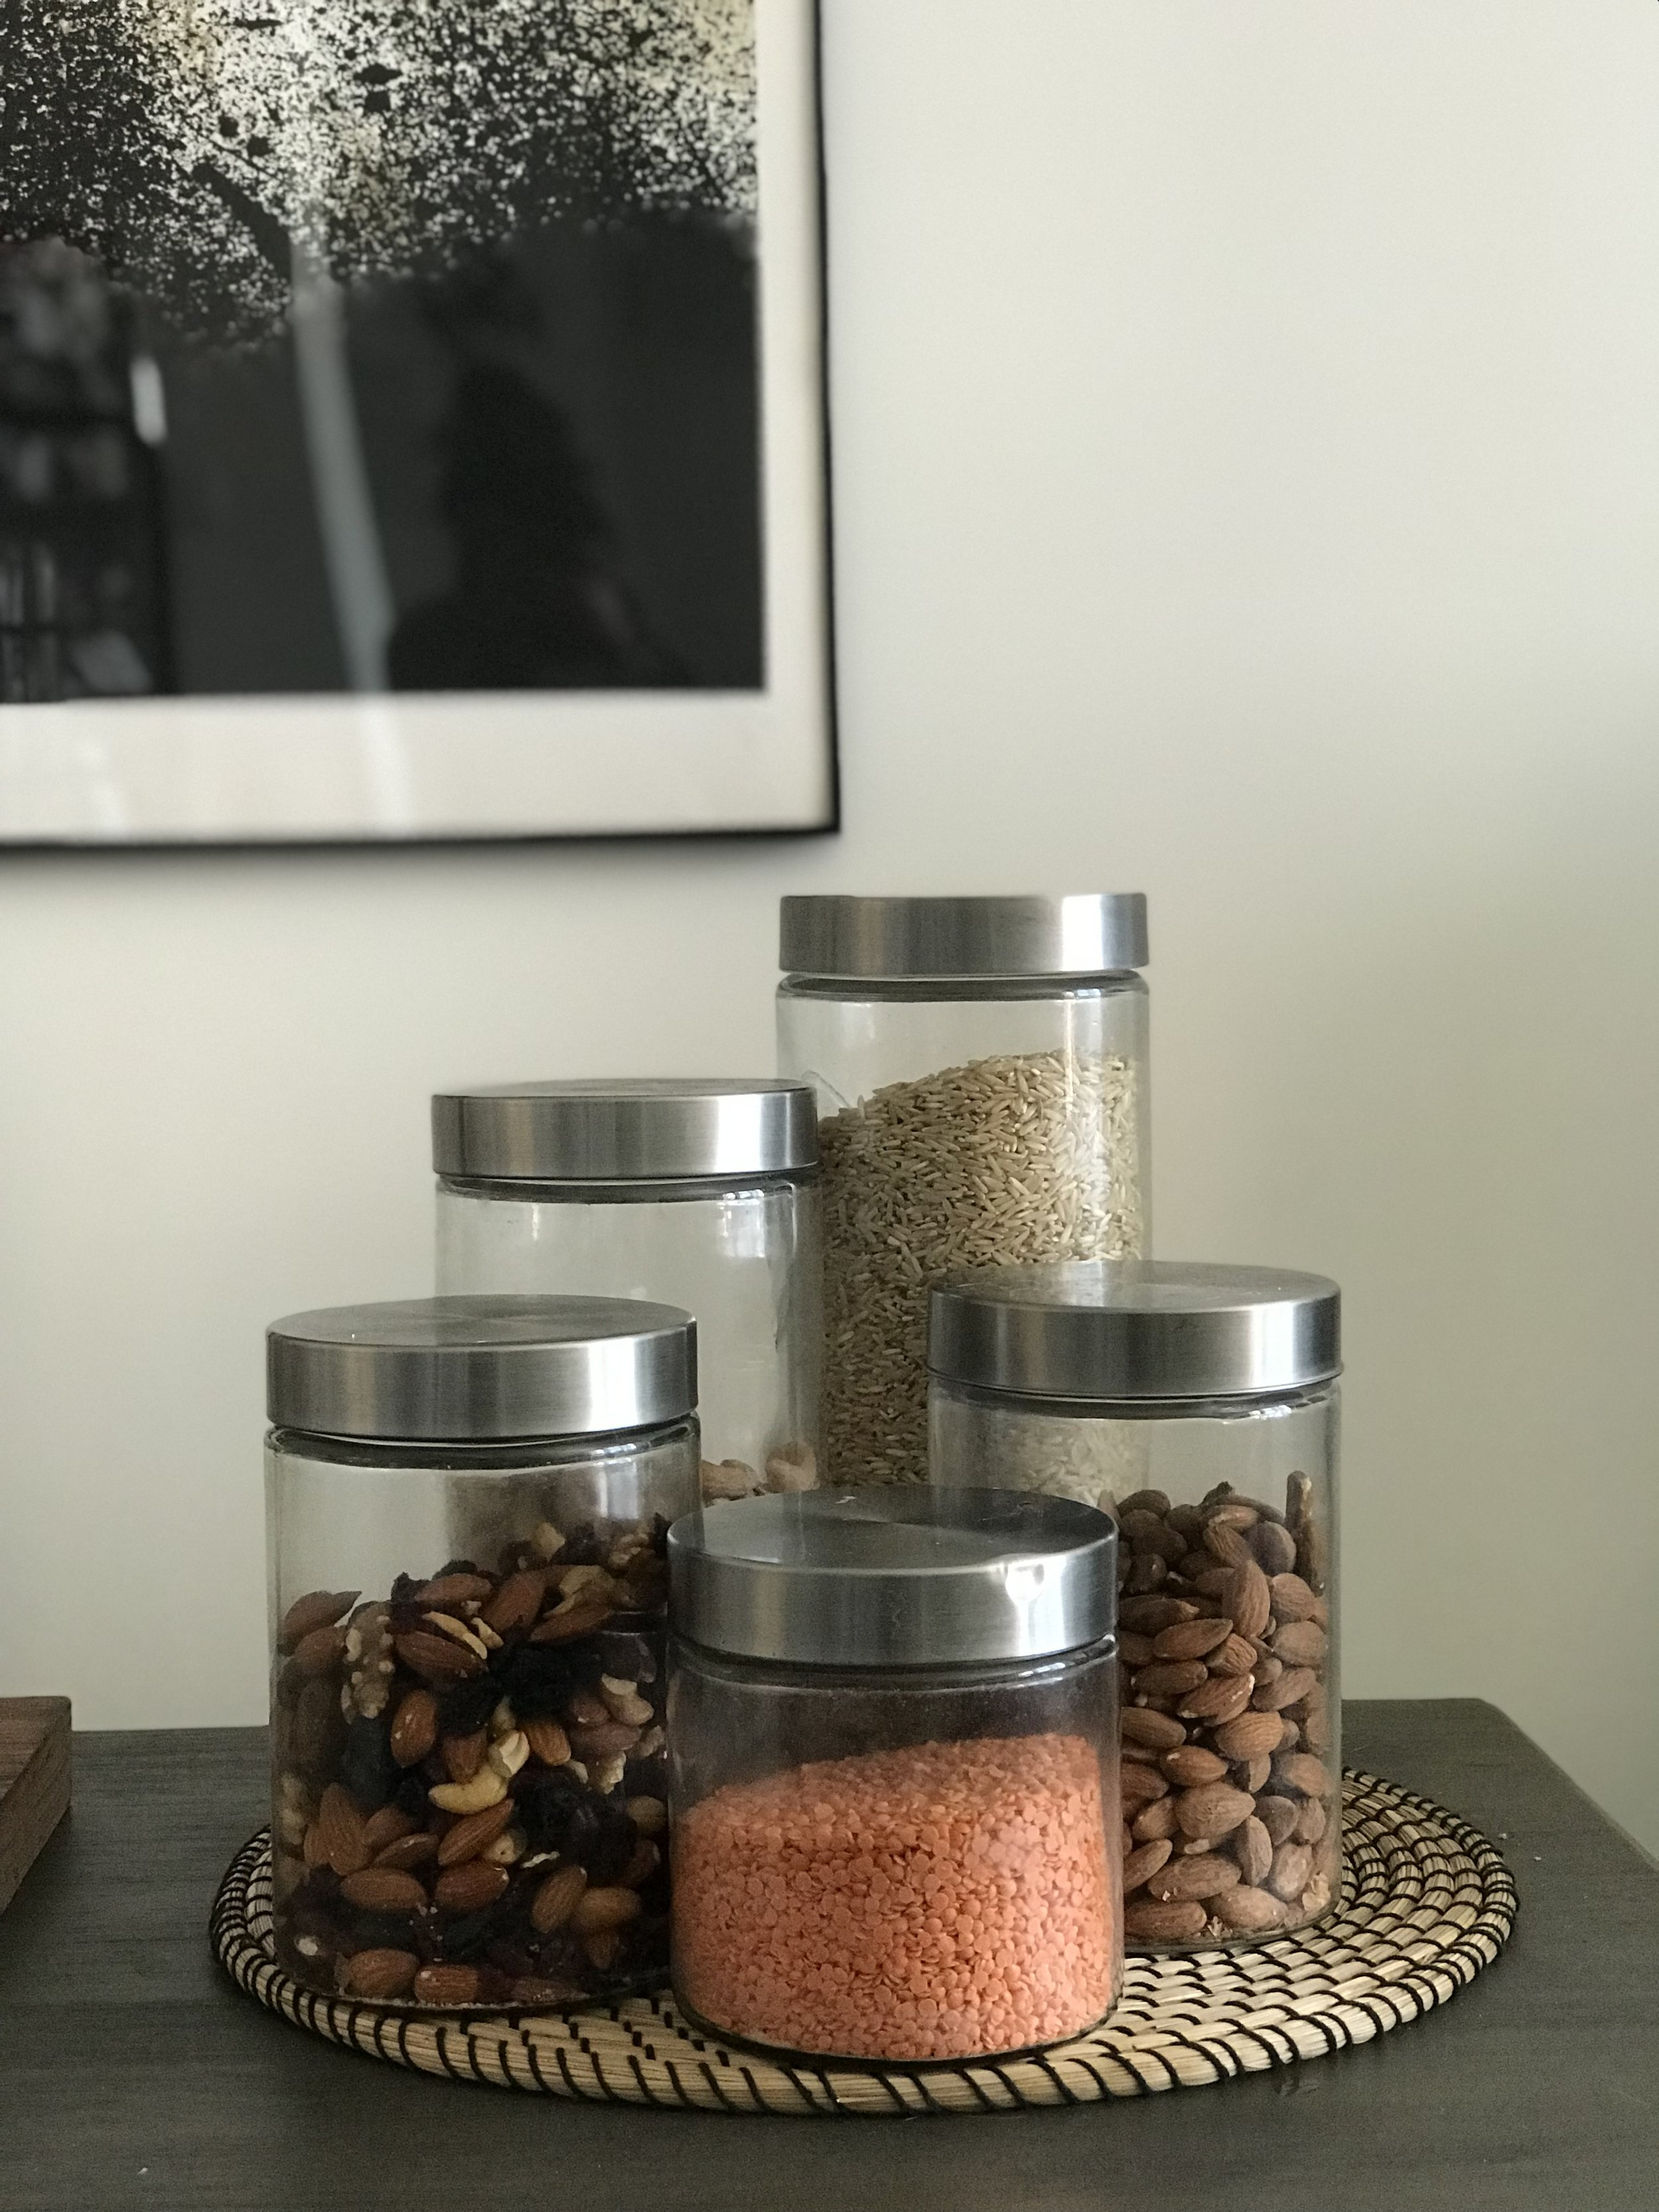 Glass containers purchased from Target